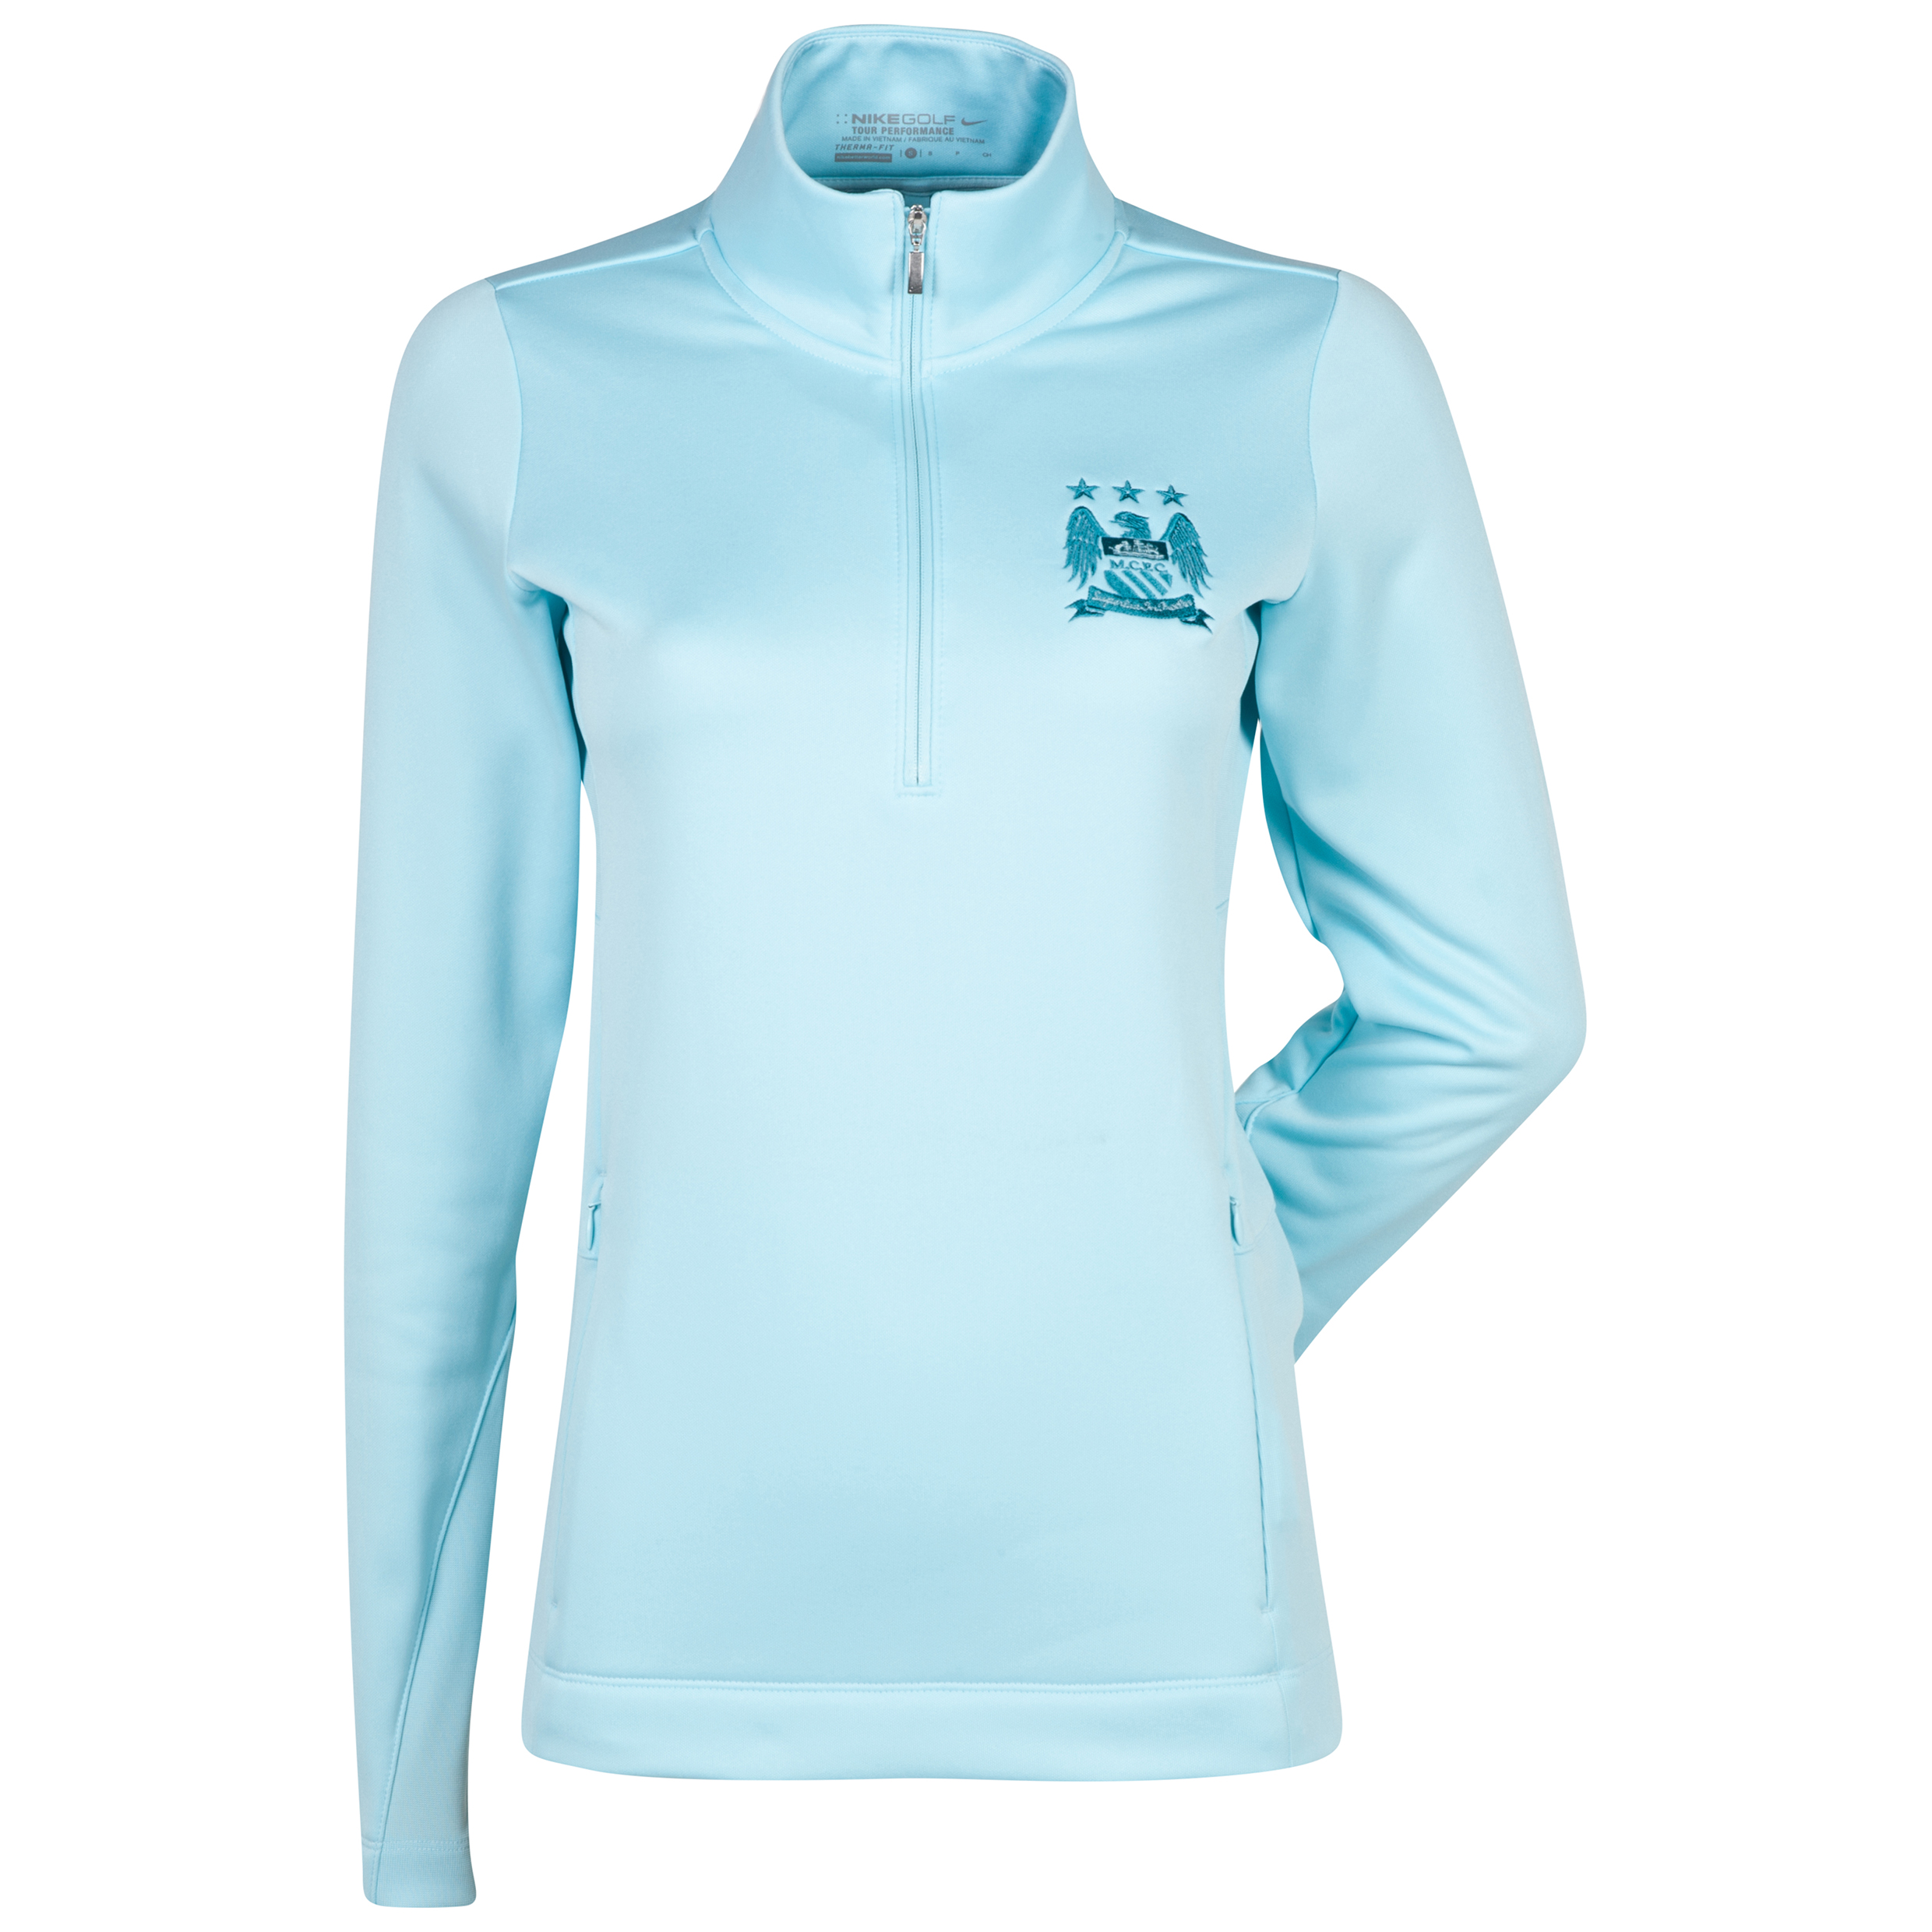 Manchester City Nike Thermal 1/2 Zip Top - Womens Lt Blue